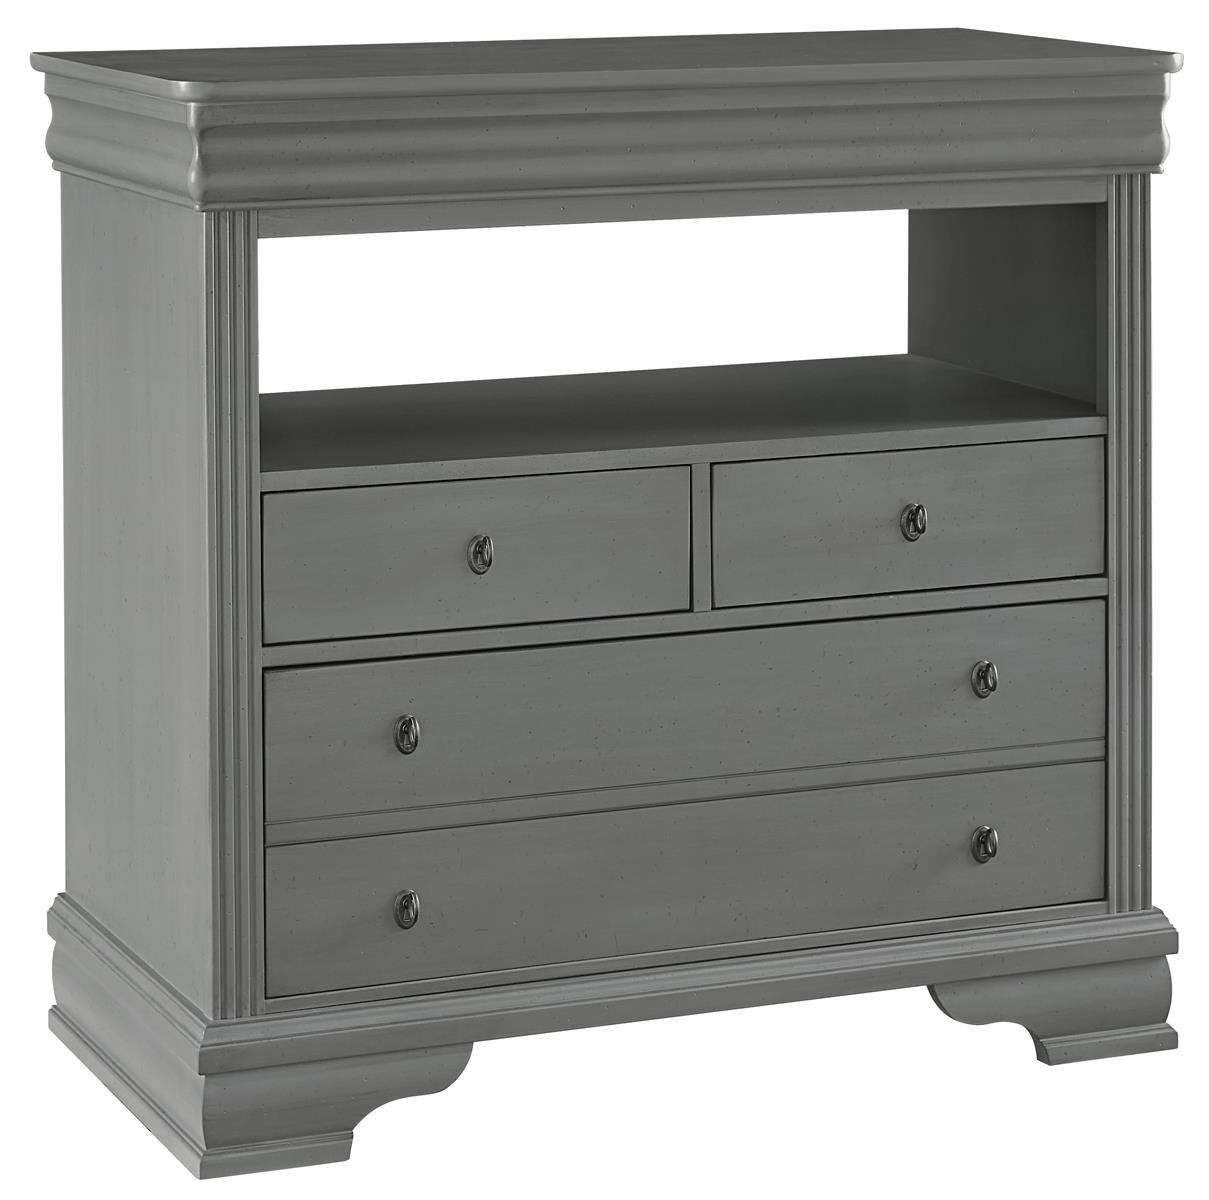 All-American French Market 4 Drawer Media Chest in Zinc